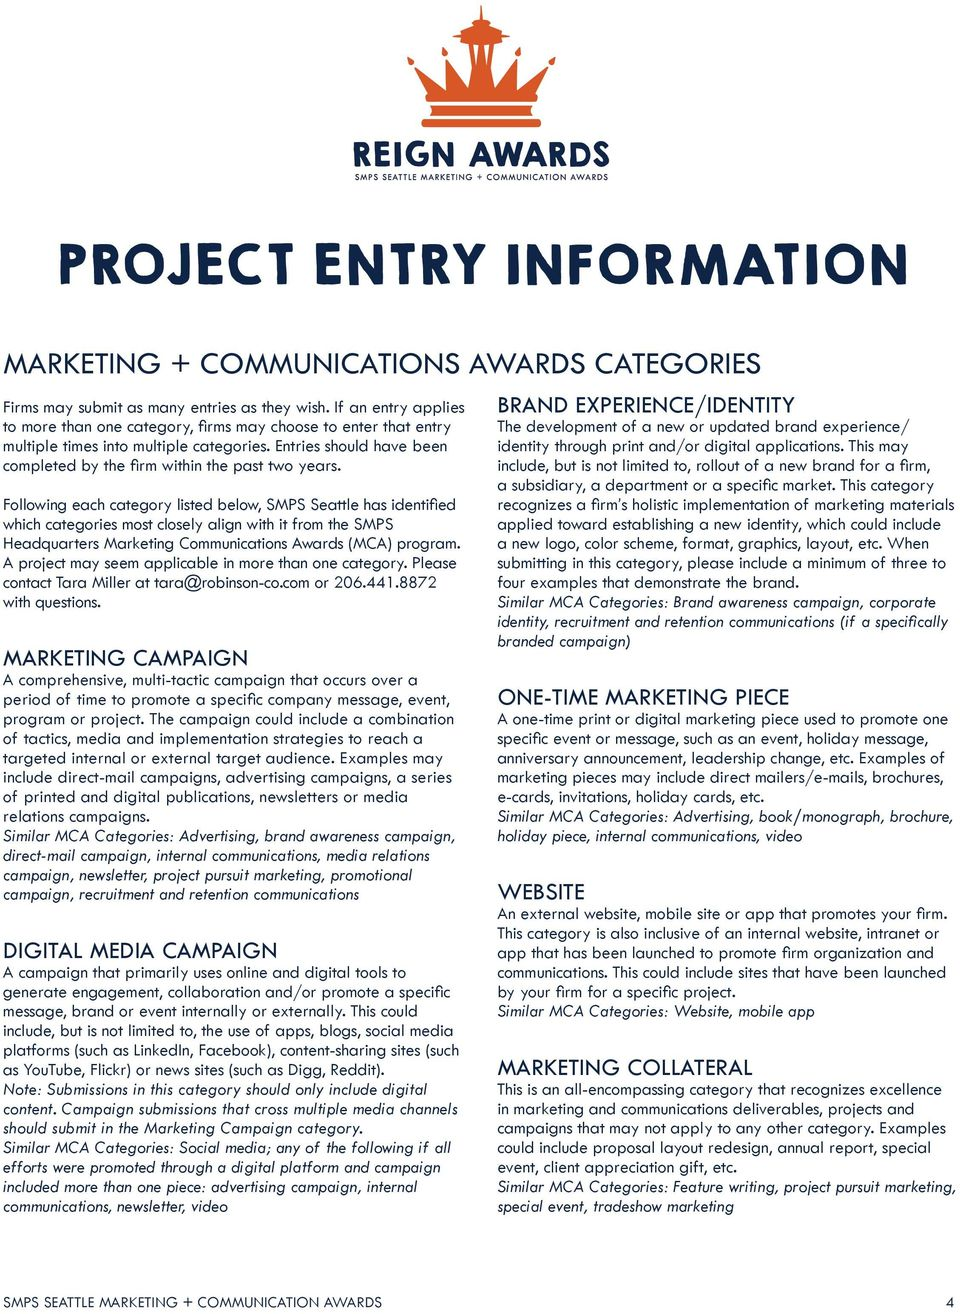 Following each category listed below, SMPS Seattle has identified which categories most closely align with it from the SMPS Headquarters Marketing Communications Awards (MCA) program.